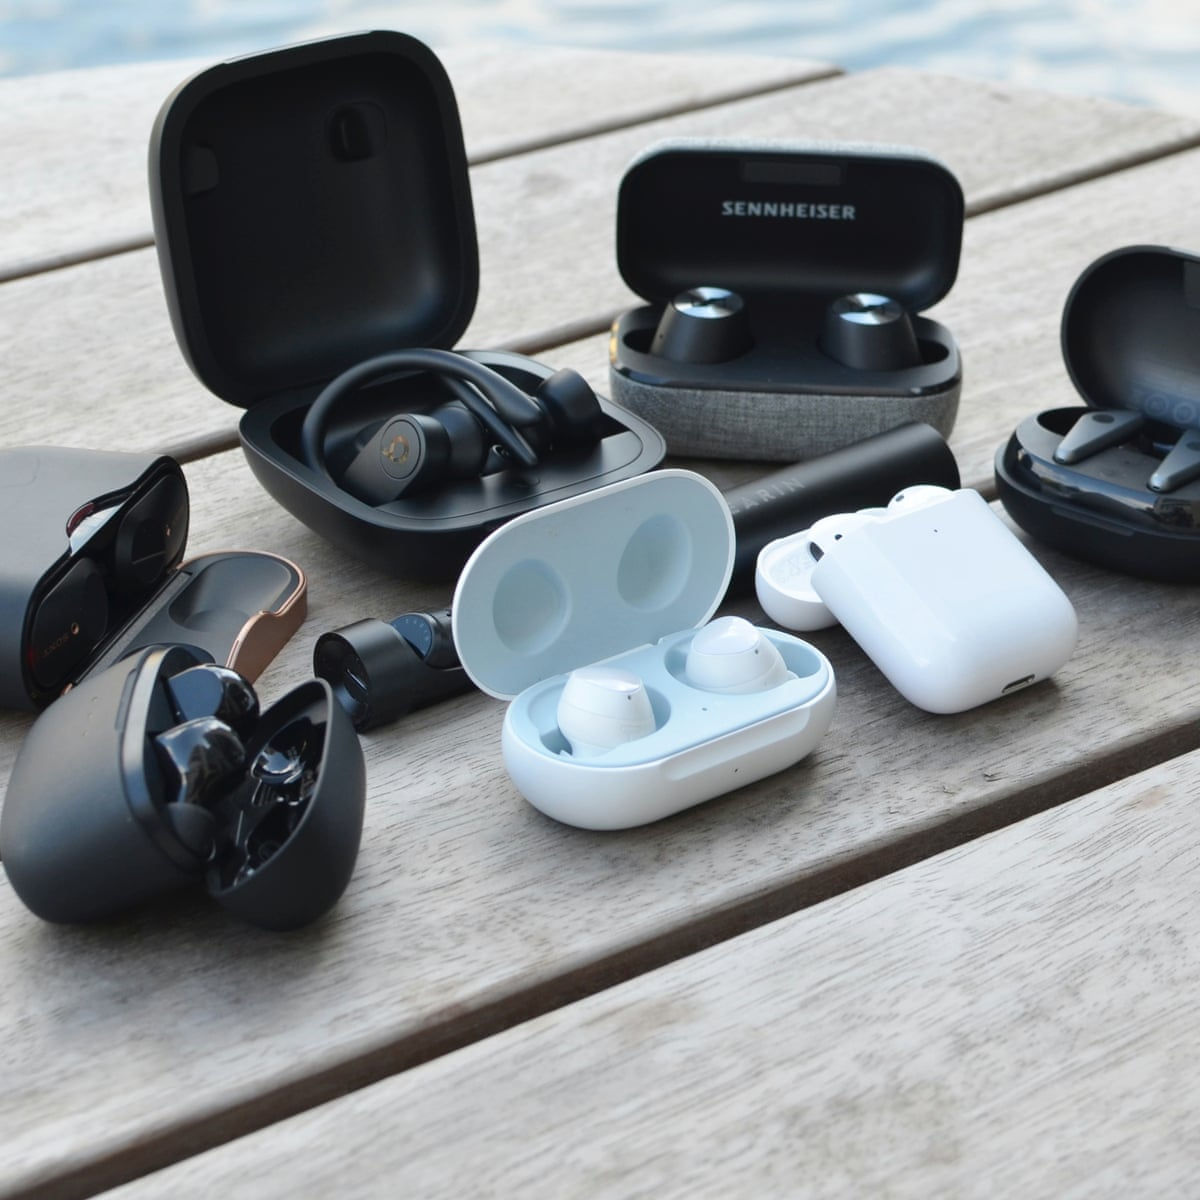 Best True Wireless Earbuds 2019 Airpods Samsung Jabra Beats And Anker Compared And Ranked Technology The Guardian